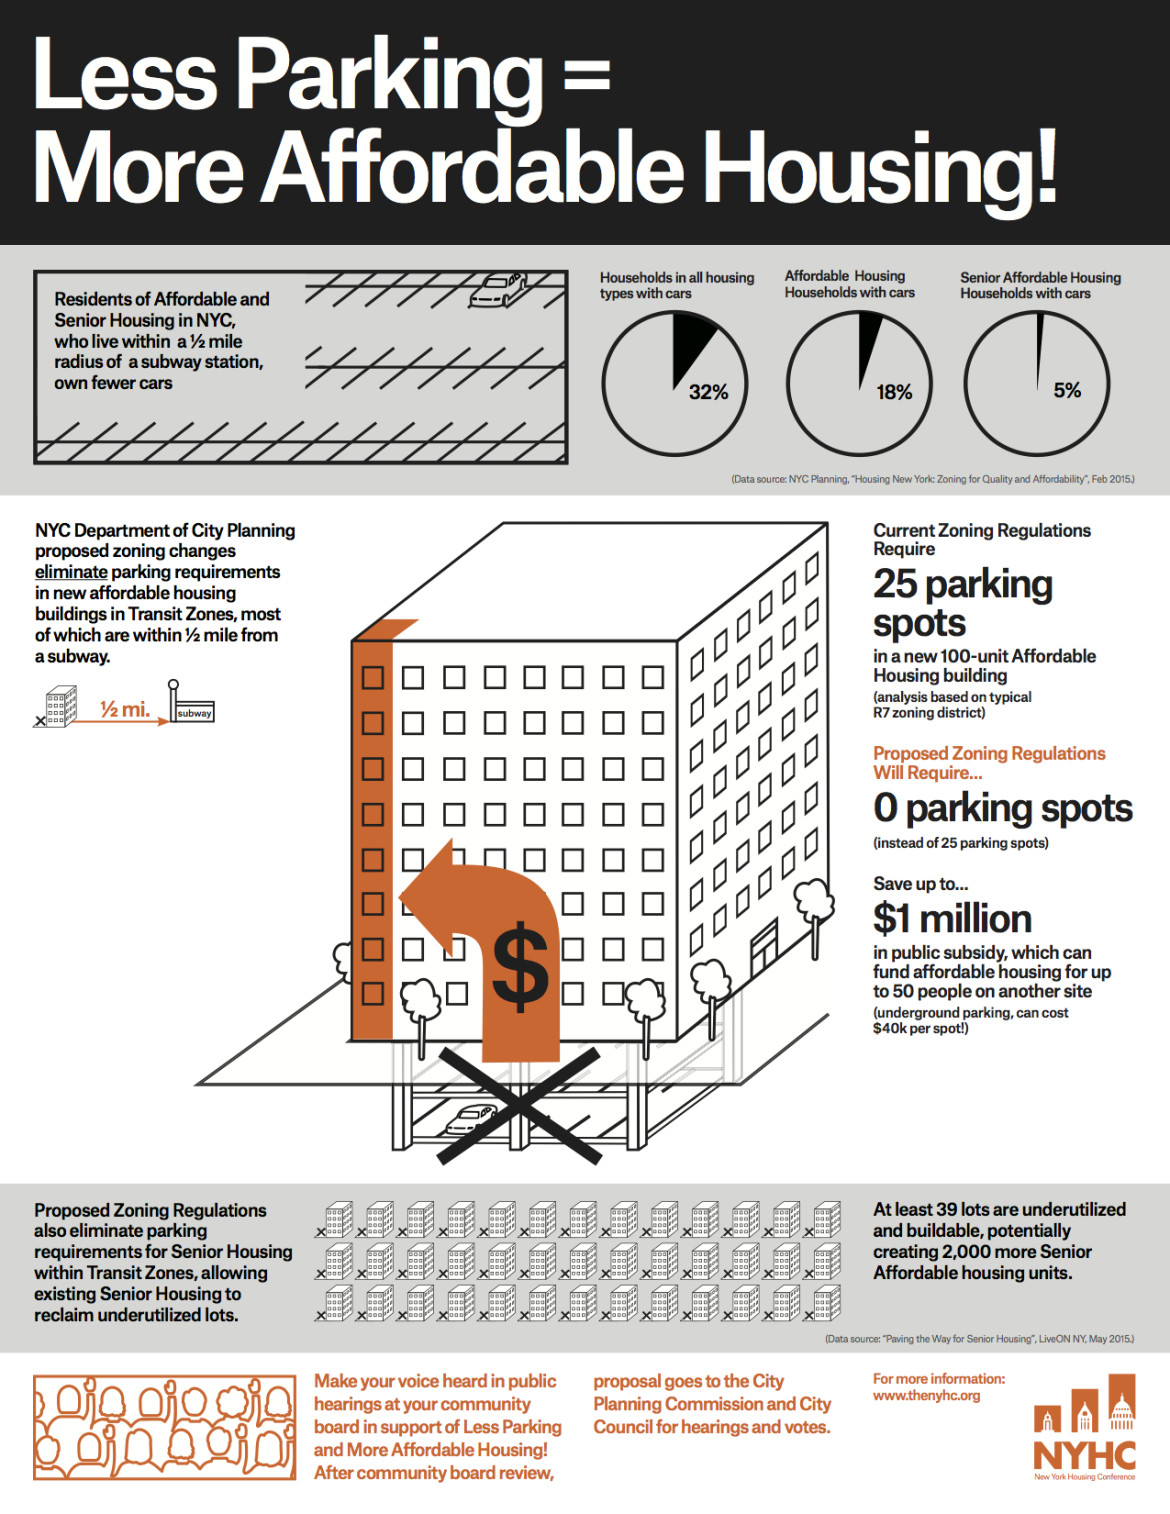 Less Parking=More Affordable Housing 2015 copy